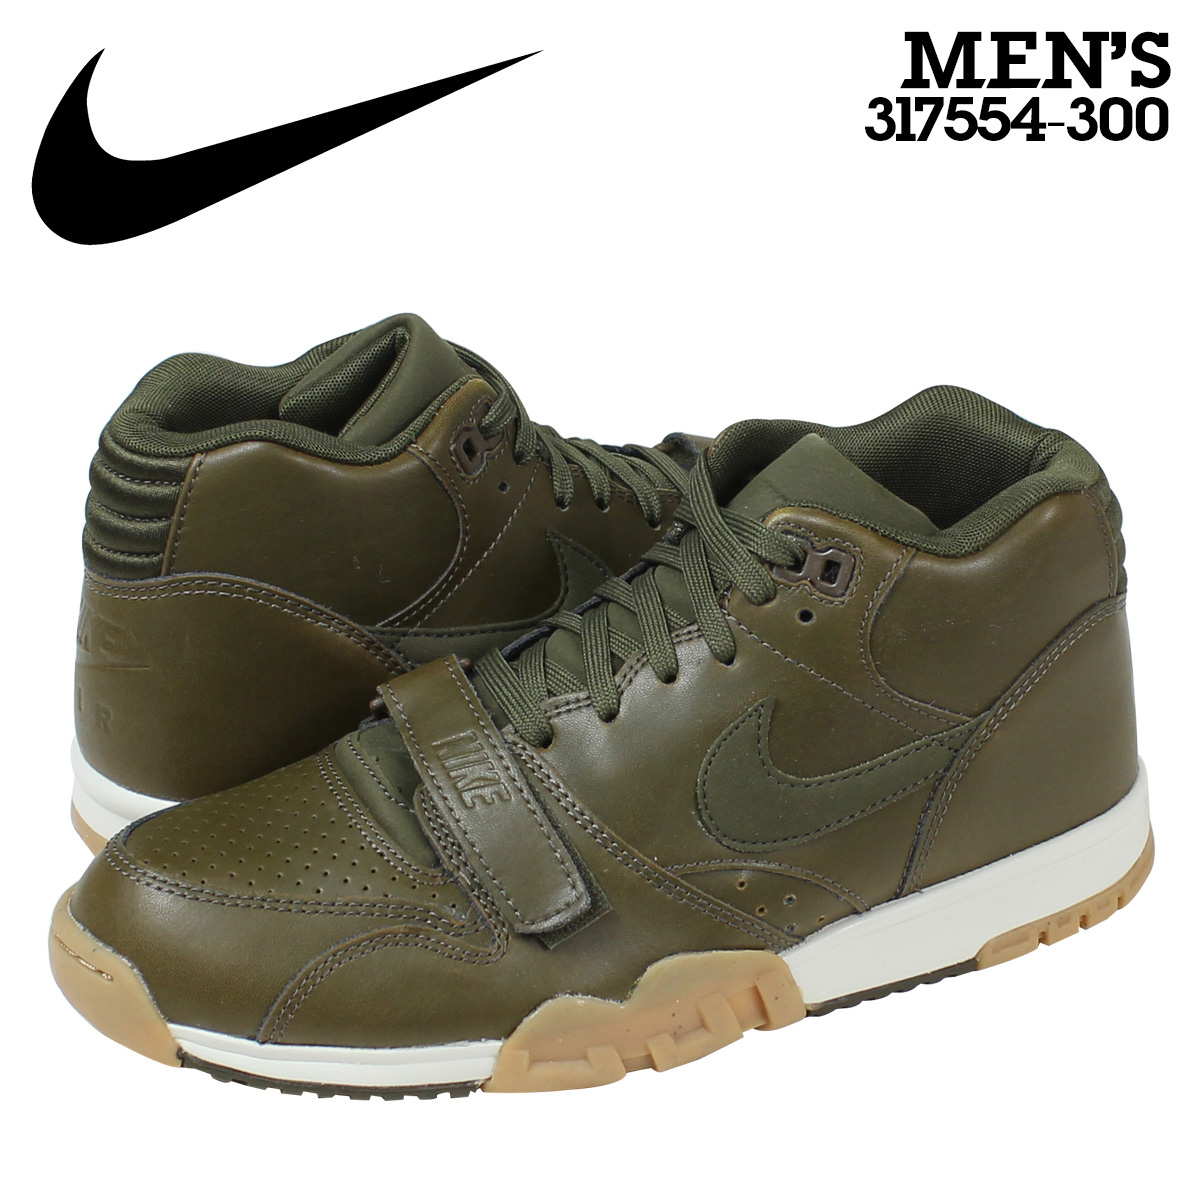 5ae71677a90a Nike NIKE air trainer sneakers AIR TRAINER 1 MID air trainer 1 mid 317554 -  300 men s shoes Brown